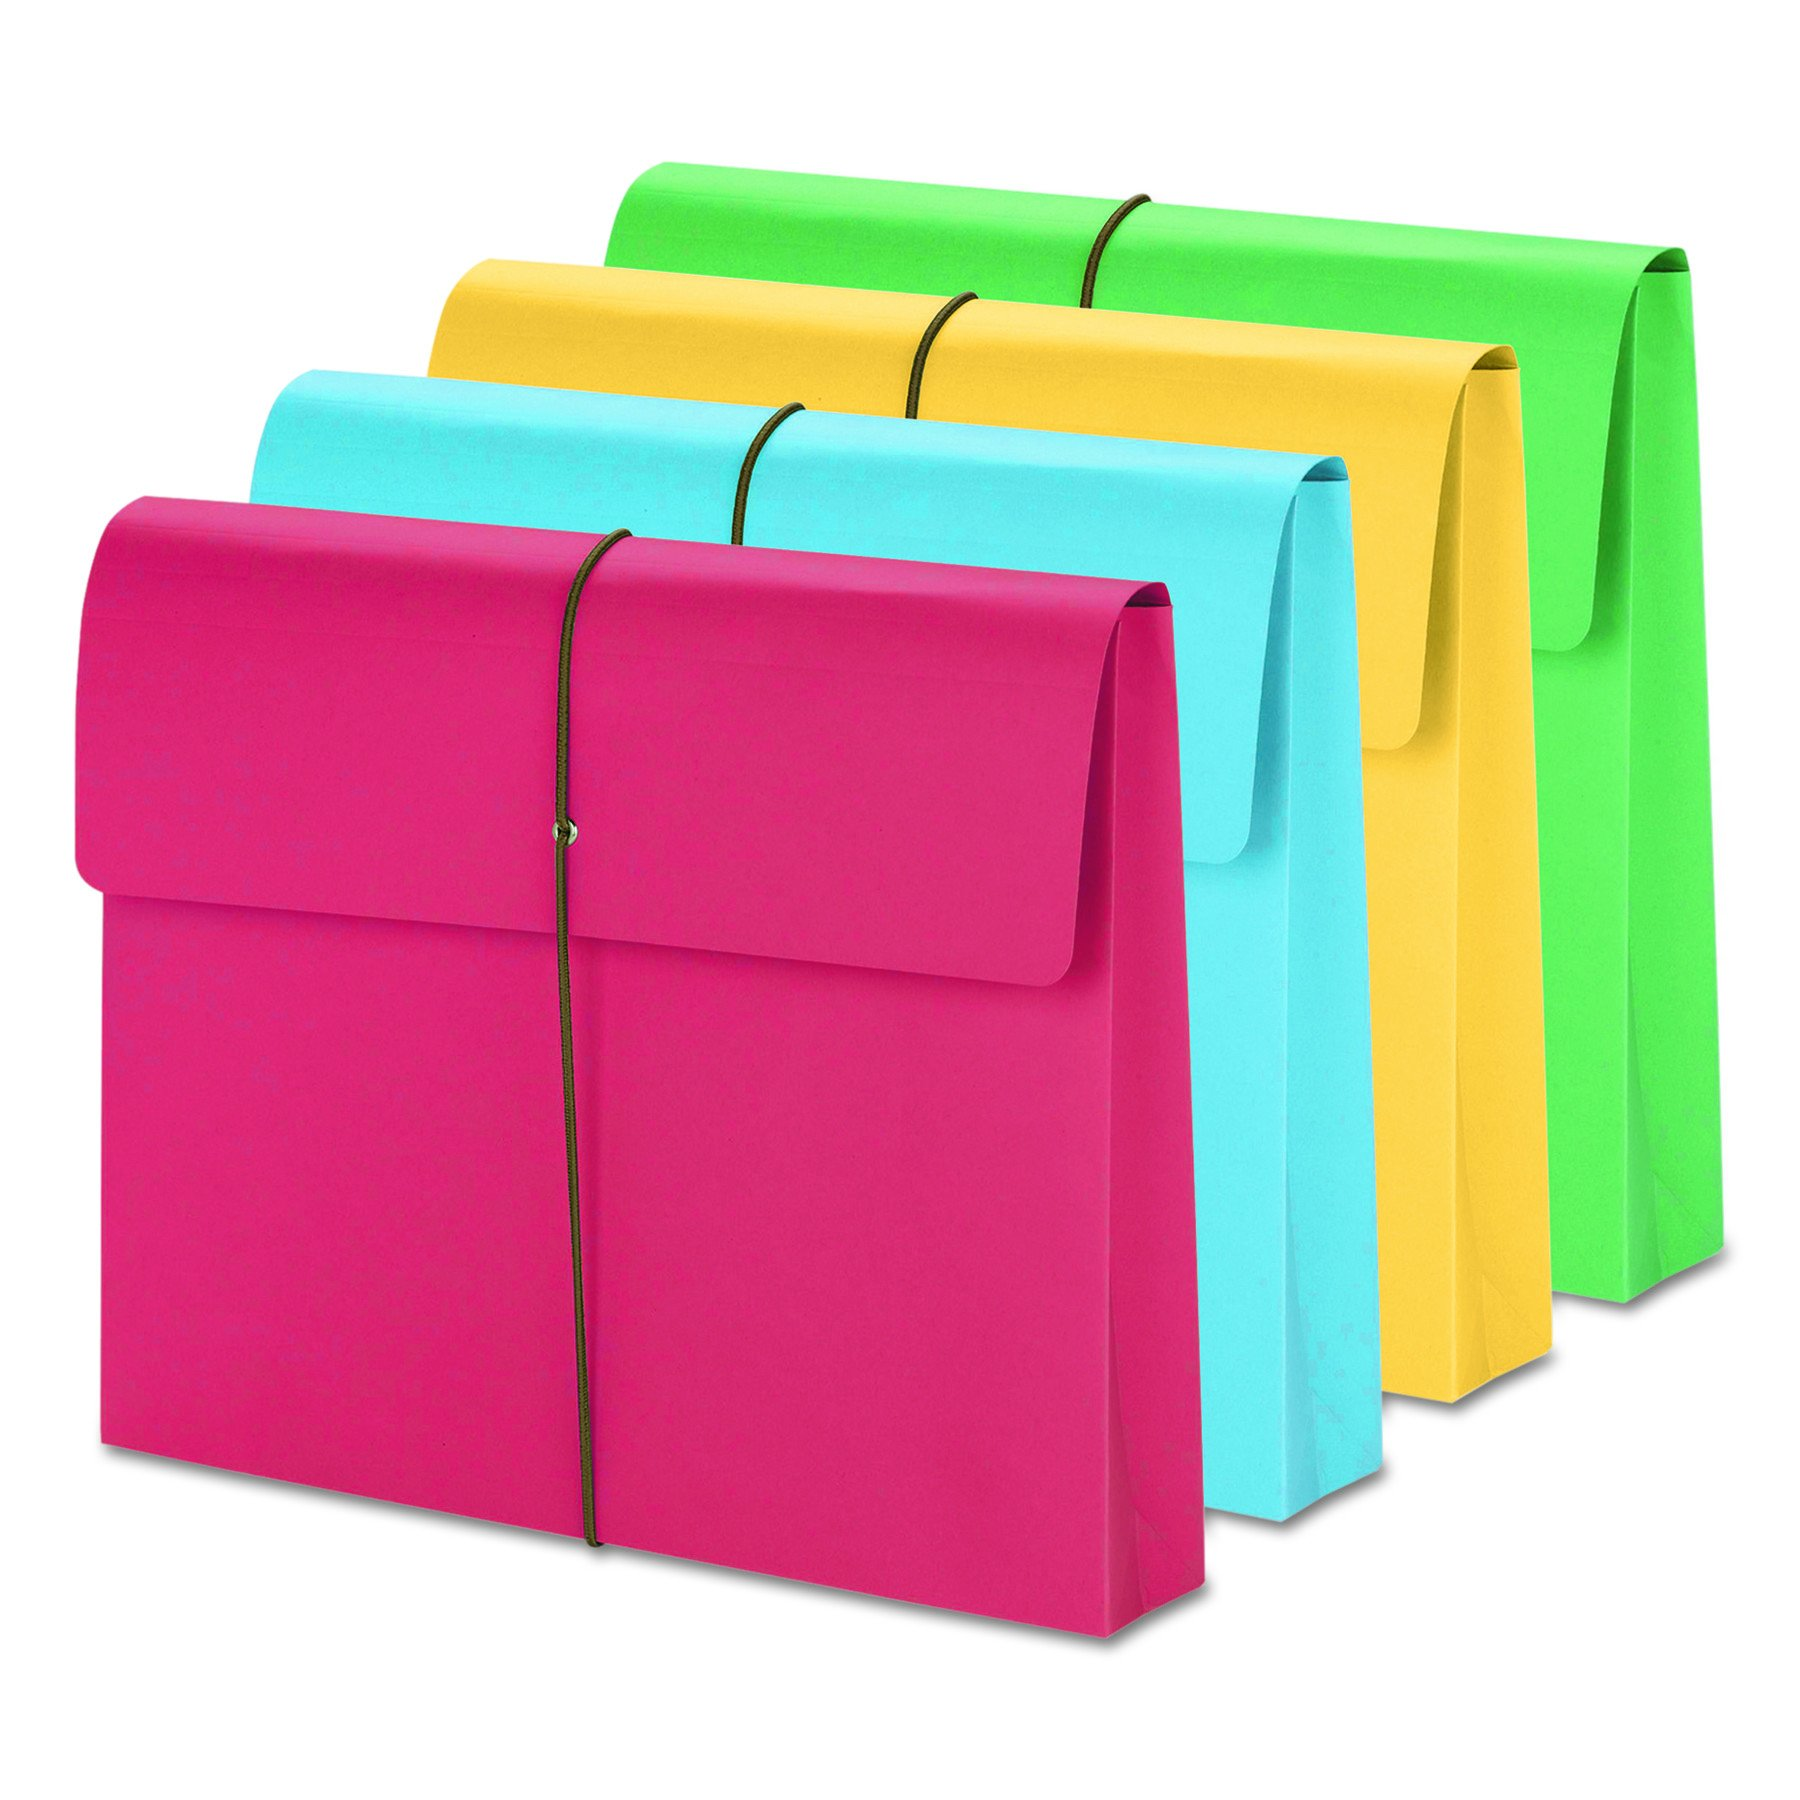 Smead Expanding File Wallet with  Closure, 2'' Expansion,  Closure, Letter Size, Assorted Colors, 50 per Box (77251) by Smead